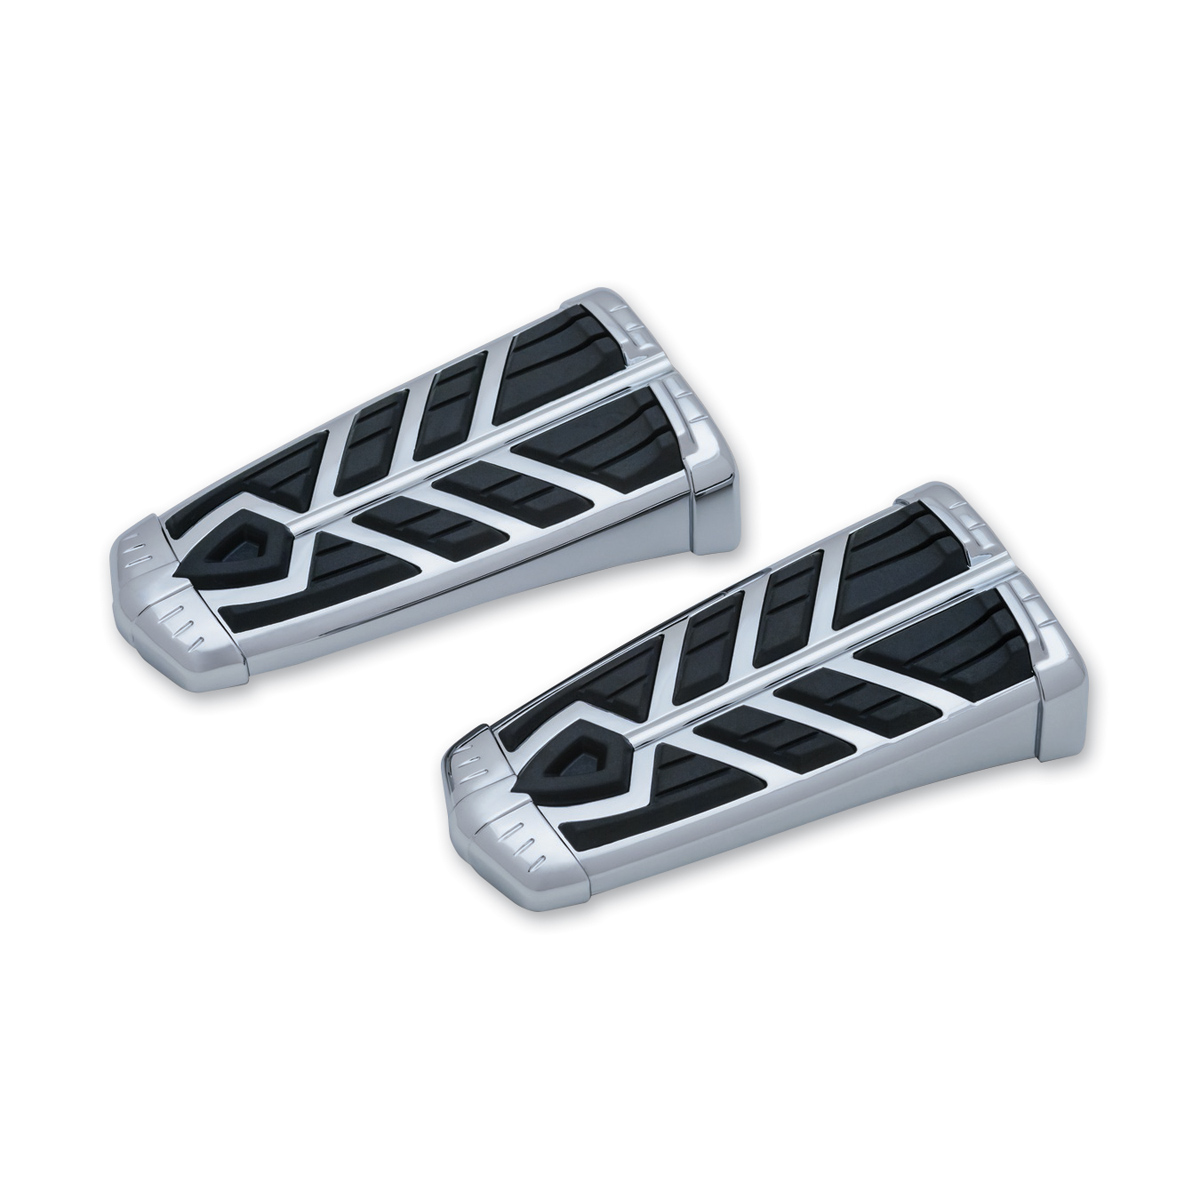 Chrome 1 Pair Spear Footpegs without Adapters Kuryakyn 5658 Motorcycle Foot Control Component